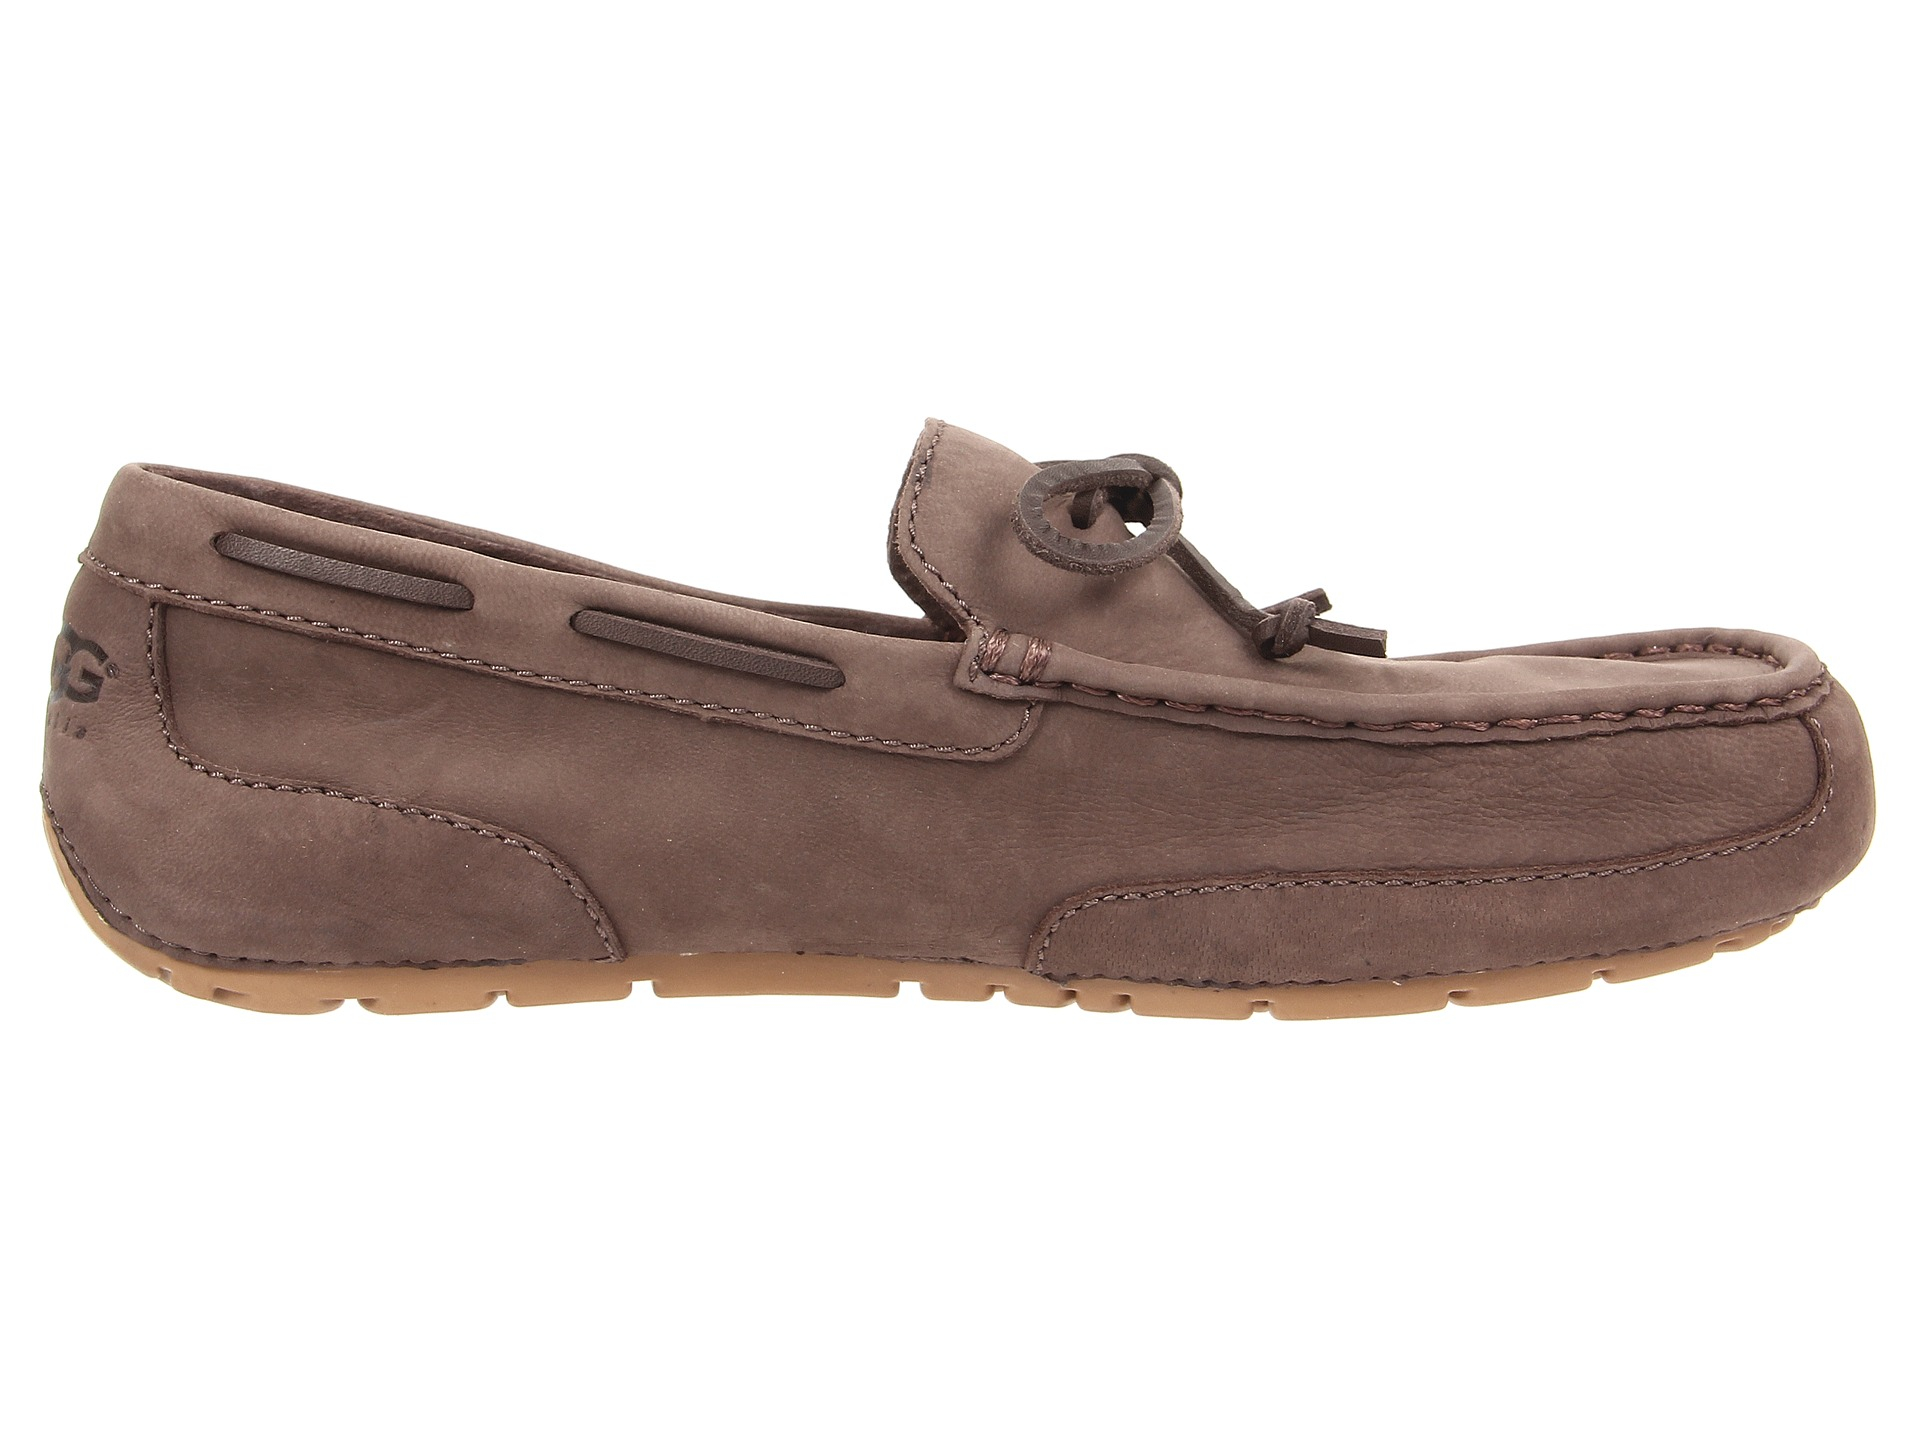 a9fea4c2737 Lyst - UGG Chester Capra in Brown for Men